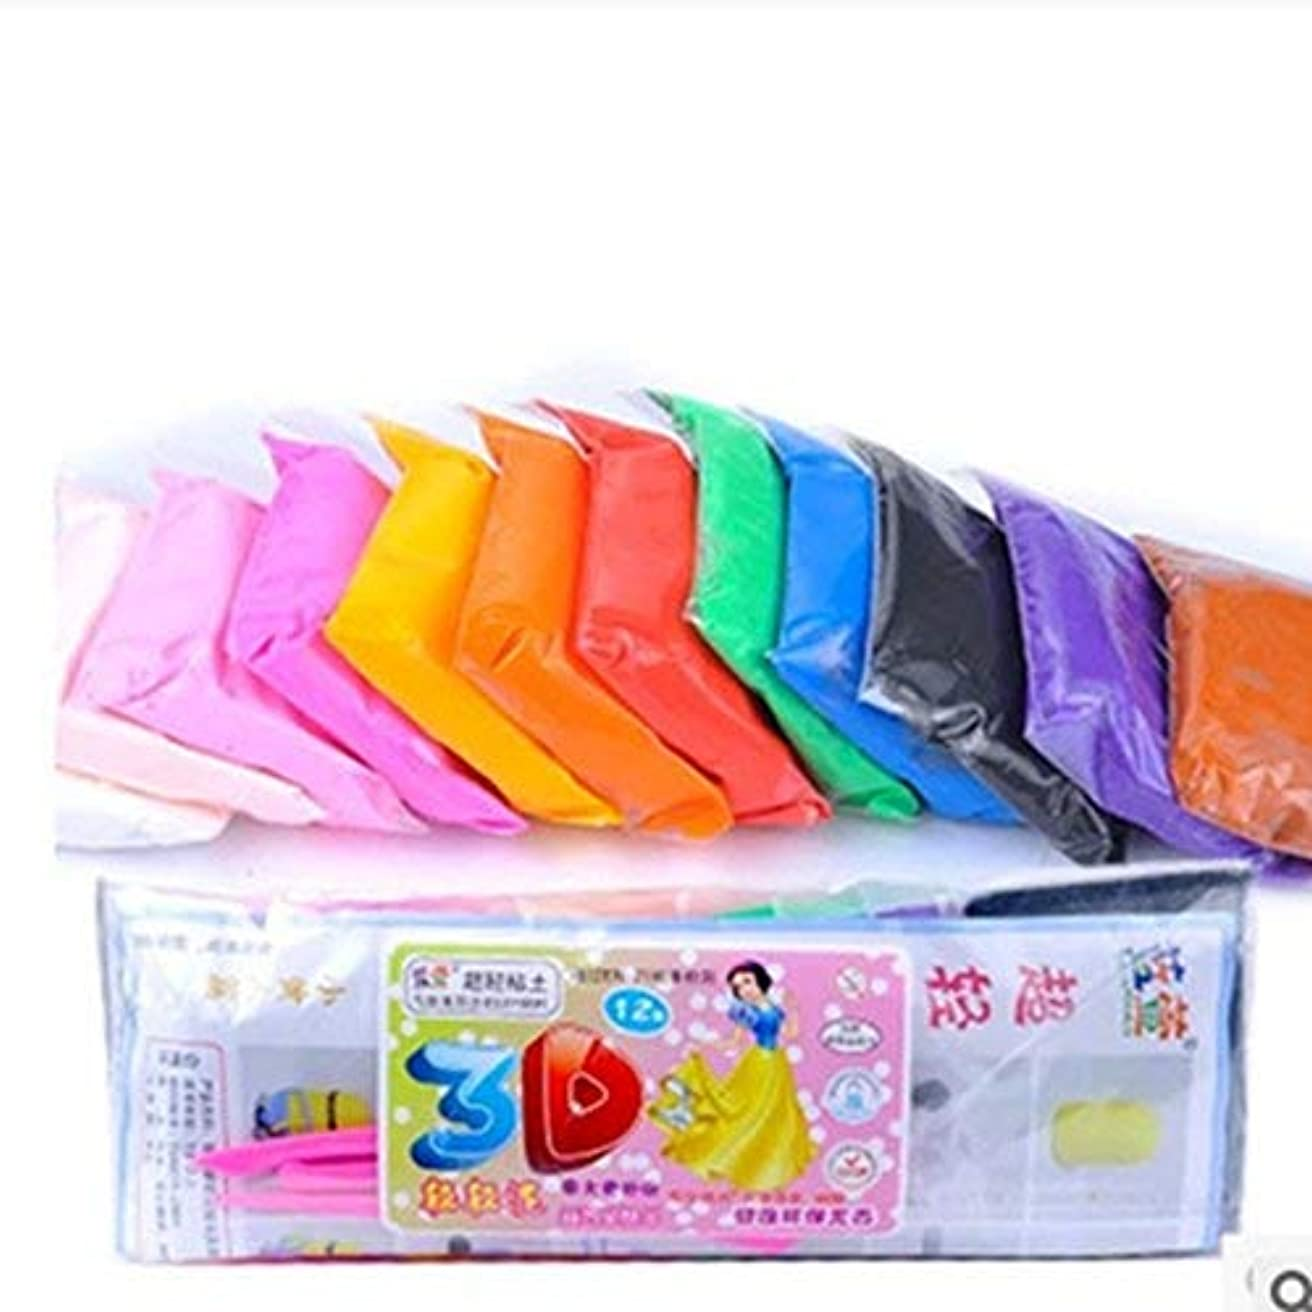 JIAHUI Air Dry Clay Ultra Light Modelling Magic Clay 12 Colours Eco-friendly Educational DIY Creative Polymer Play Clay Best Kids Gifts for Christmas